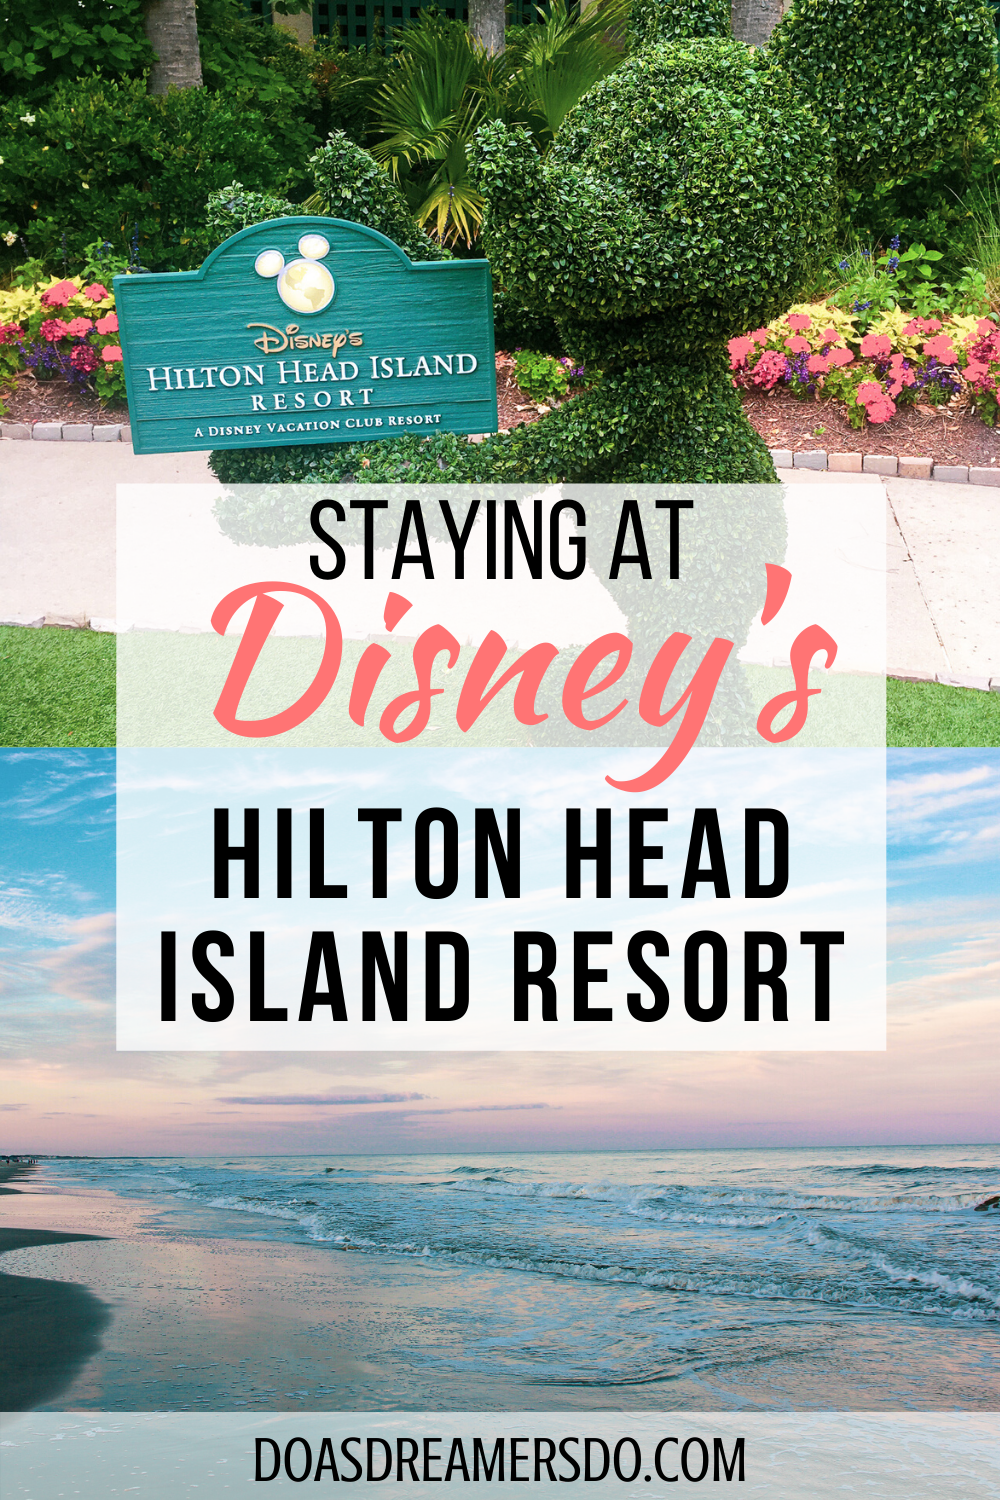 Everything you need to know about Disney's Hilton Head Island Resort in South Carolina, a Disney Vacation Club Resort!  #disney #hiltonhead #hiltonheadisland #dvc #dvcresort #scvacation #sctrip #disneyvacation #southcarolina  Disney | South Carolina | Disney vacation | Hilton Head vacation | Hilton Head SC | Hilton Head Beach | DVC | Disney Hilton Head Resort | Disney Vacation Club | South Carolina Coast | South Carolina Vacation | South Carolina Beaches | beach vacation | summer vacation |